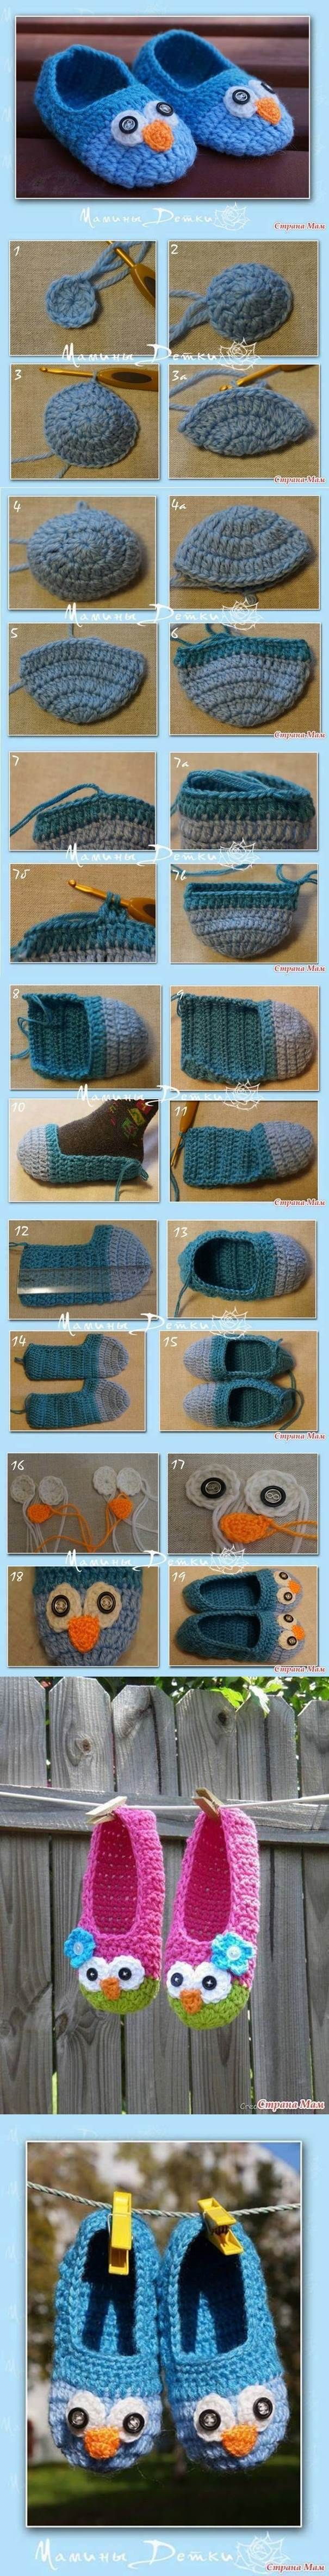 DIY Cute Crochet Owl Slippers for Kids | iCreativeIdeas.com Like Us on Facebook ==> https://www.facebook.com/icreativeideas